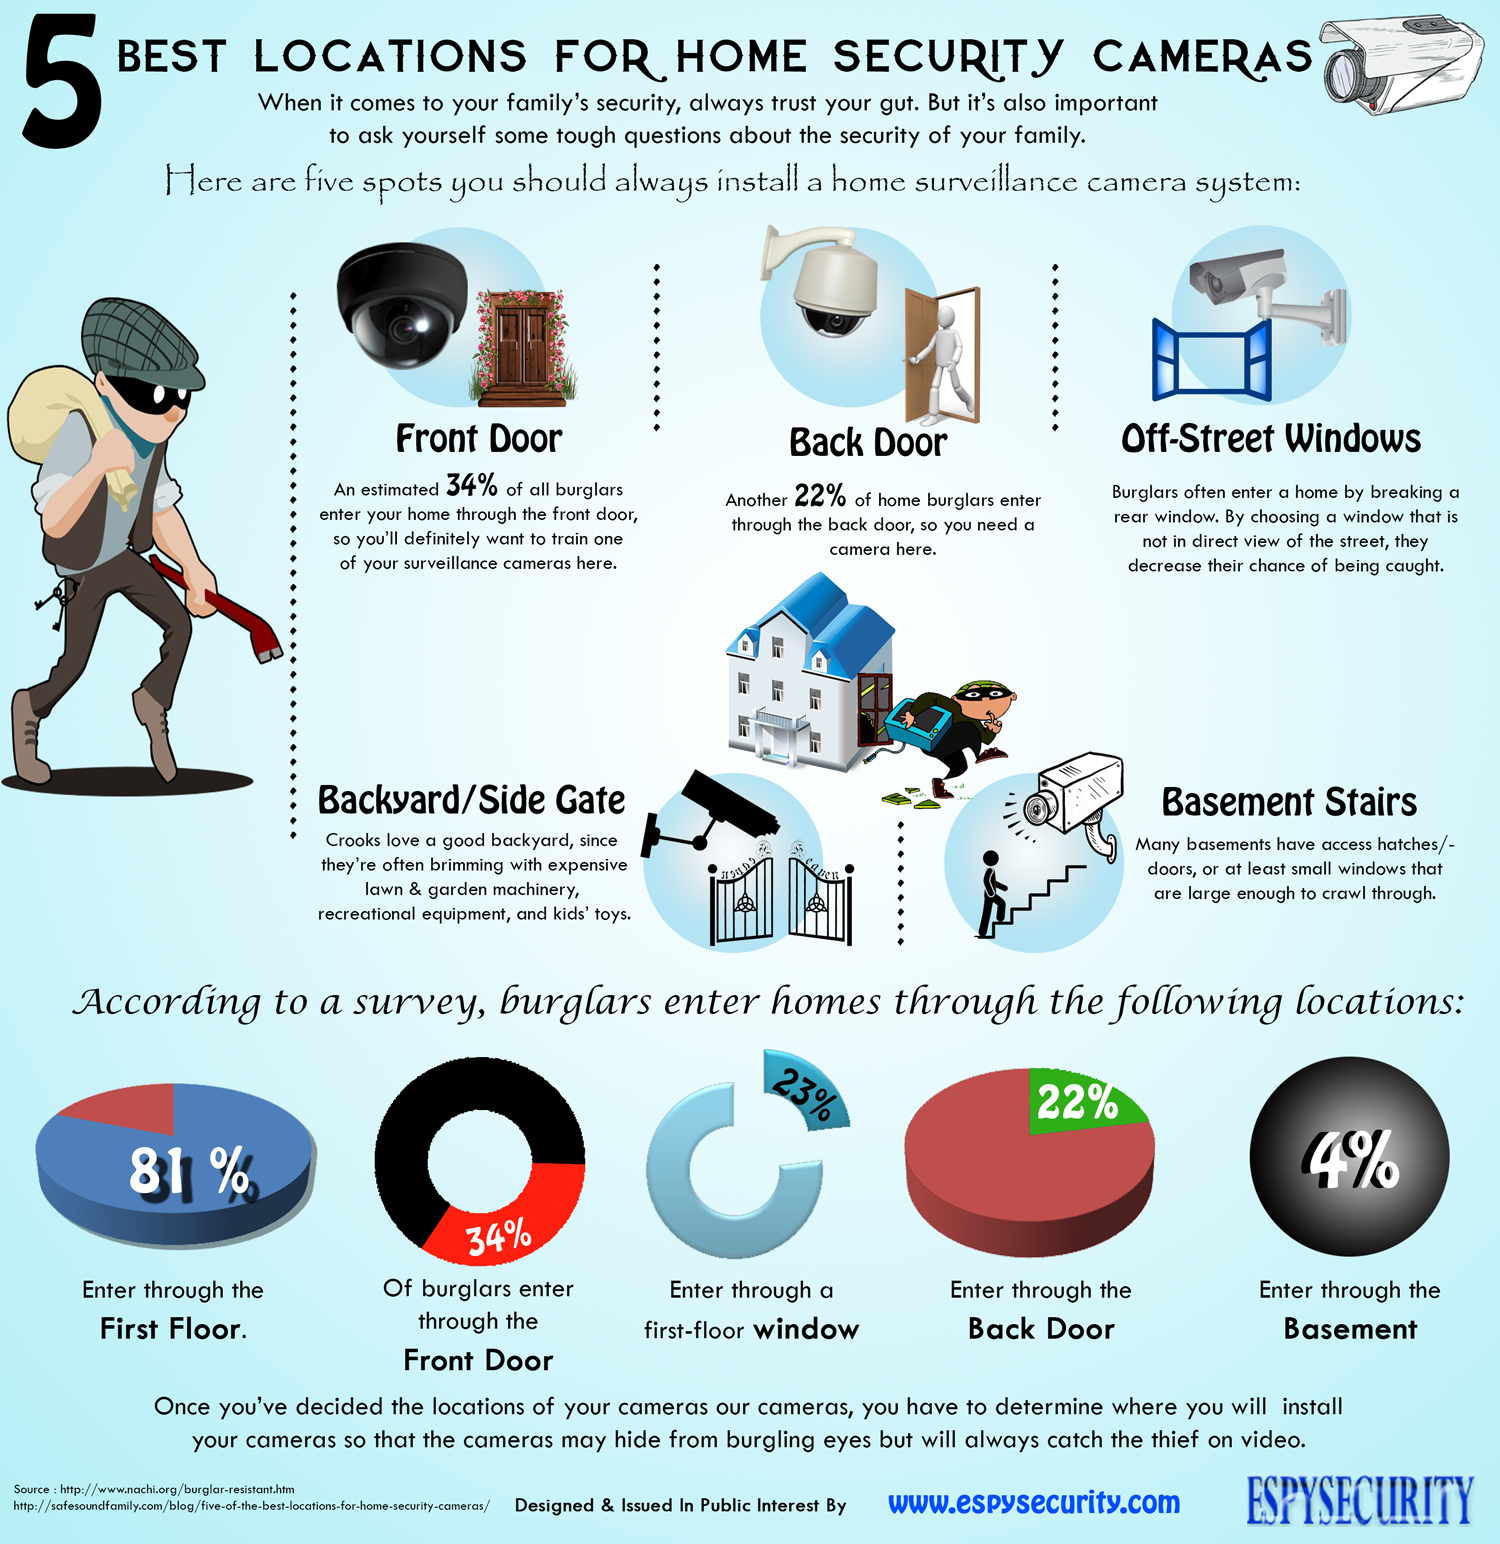 5 best locations for home security cameras visual ly